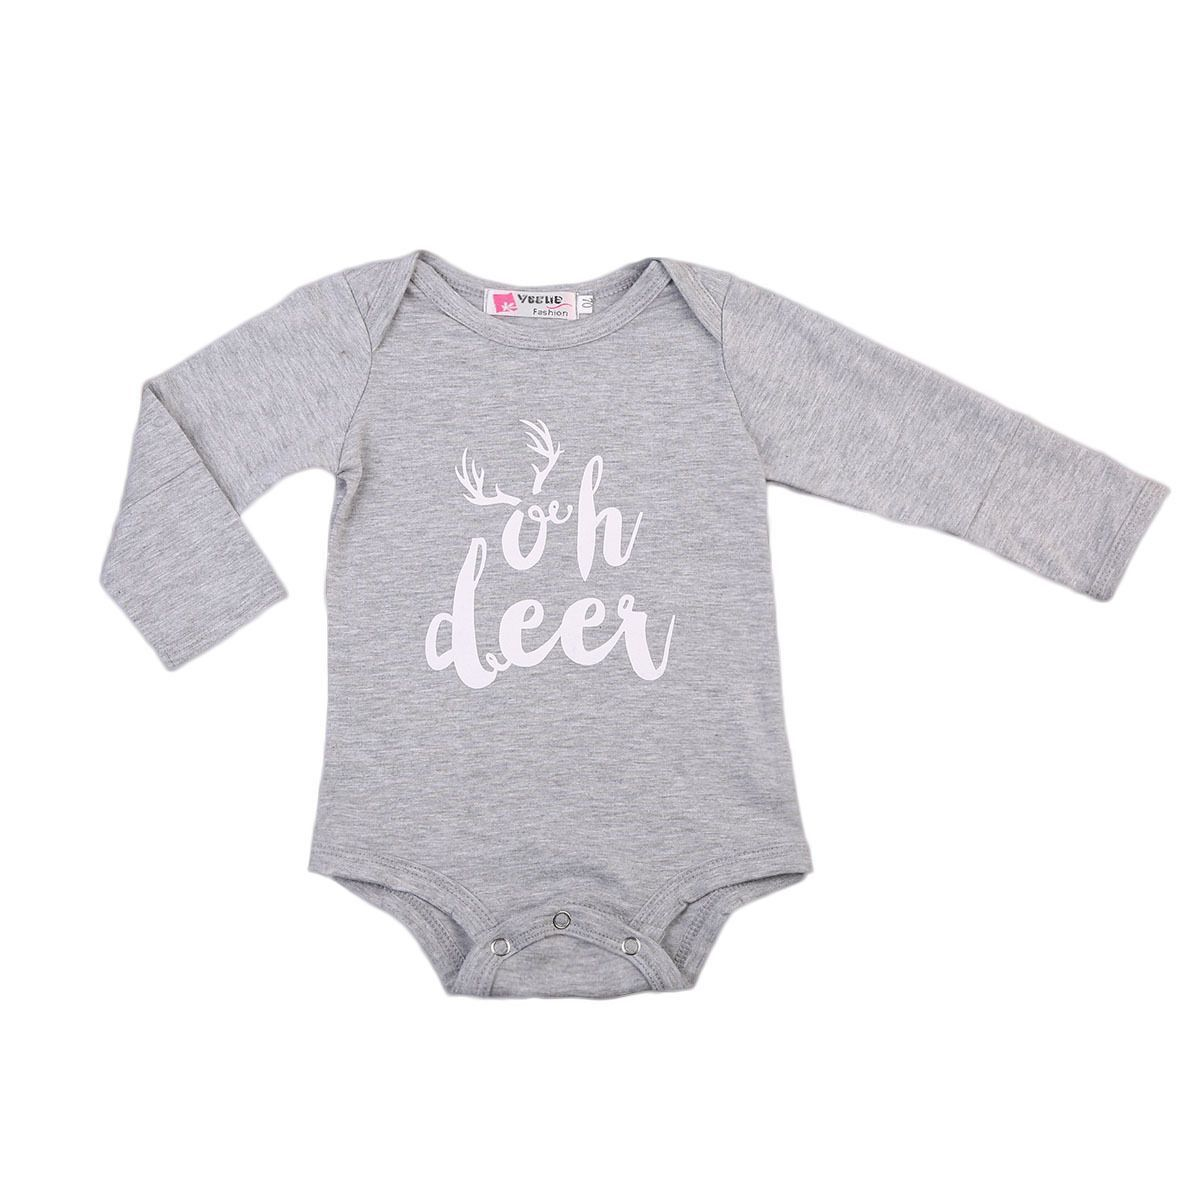 33ac1ee4 Newborn Infant Baby Girls Boys Romper Long Sleeve Deer Jumpsuit Outfits Sun  suit Clothes